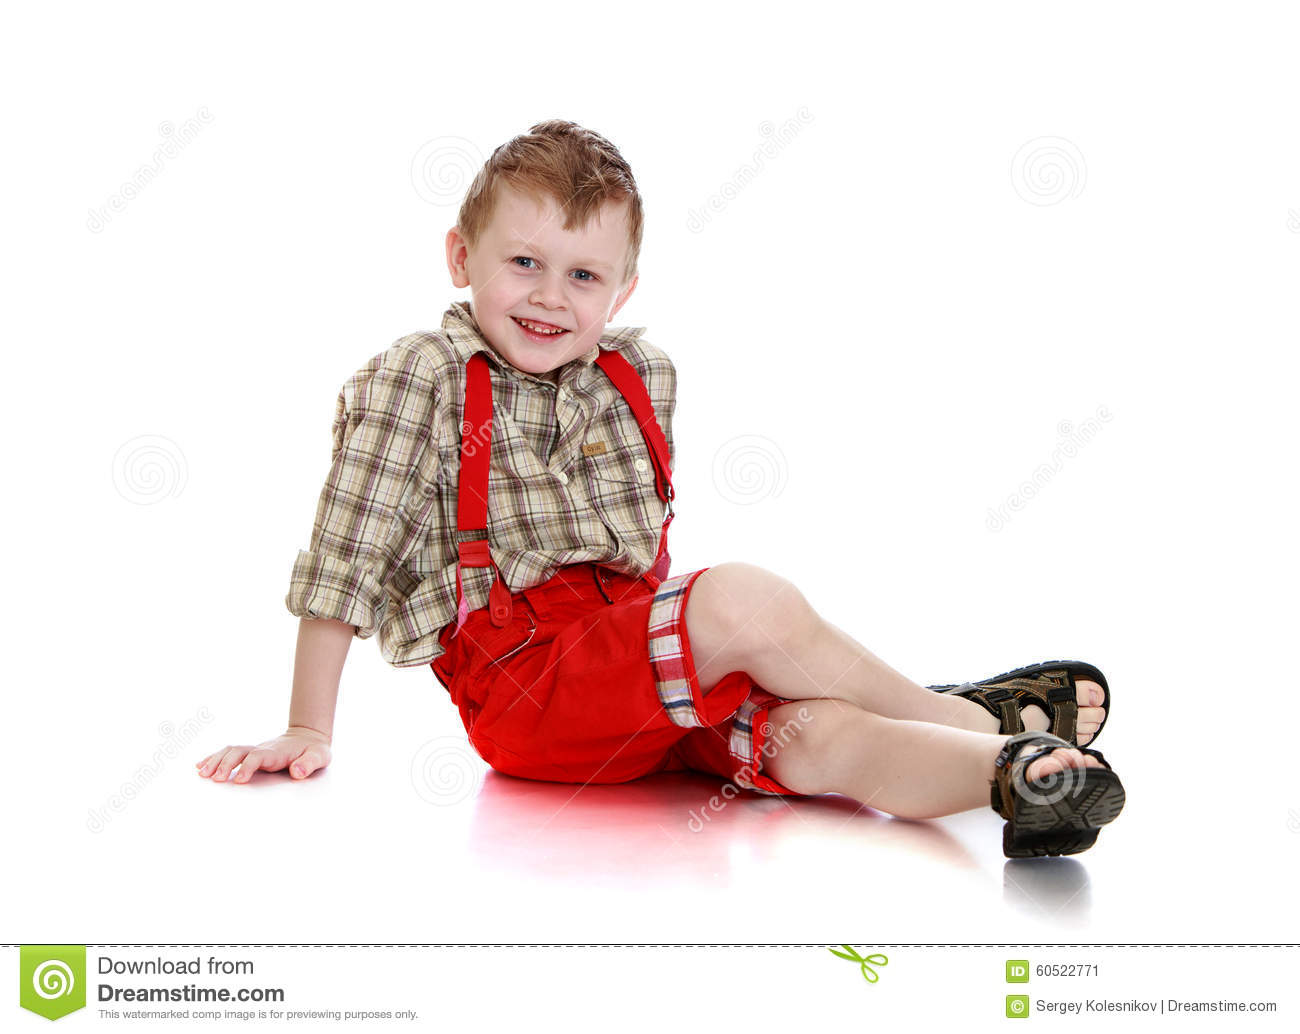 ad9f7e655 Happy little blond boy in a plaid shirt and red shorts with straps sitting  on the floor leaning on hands-Isolated on white background